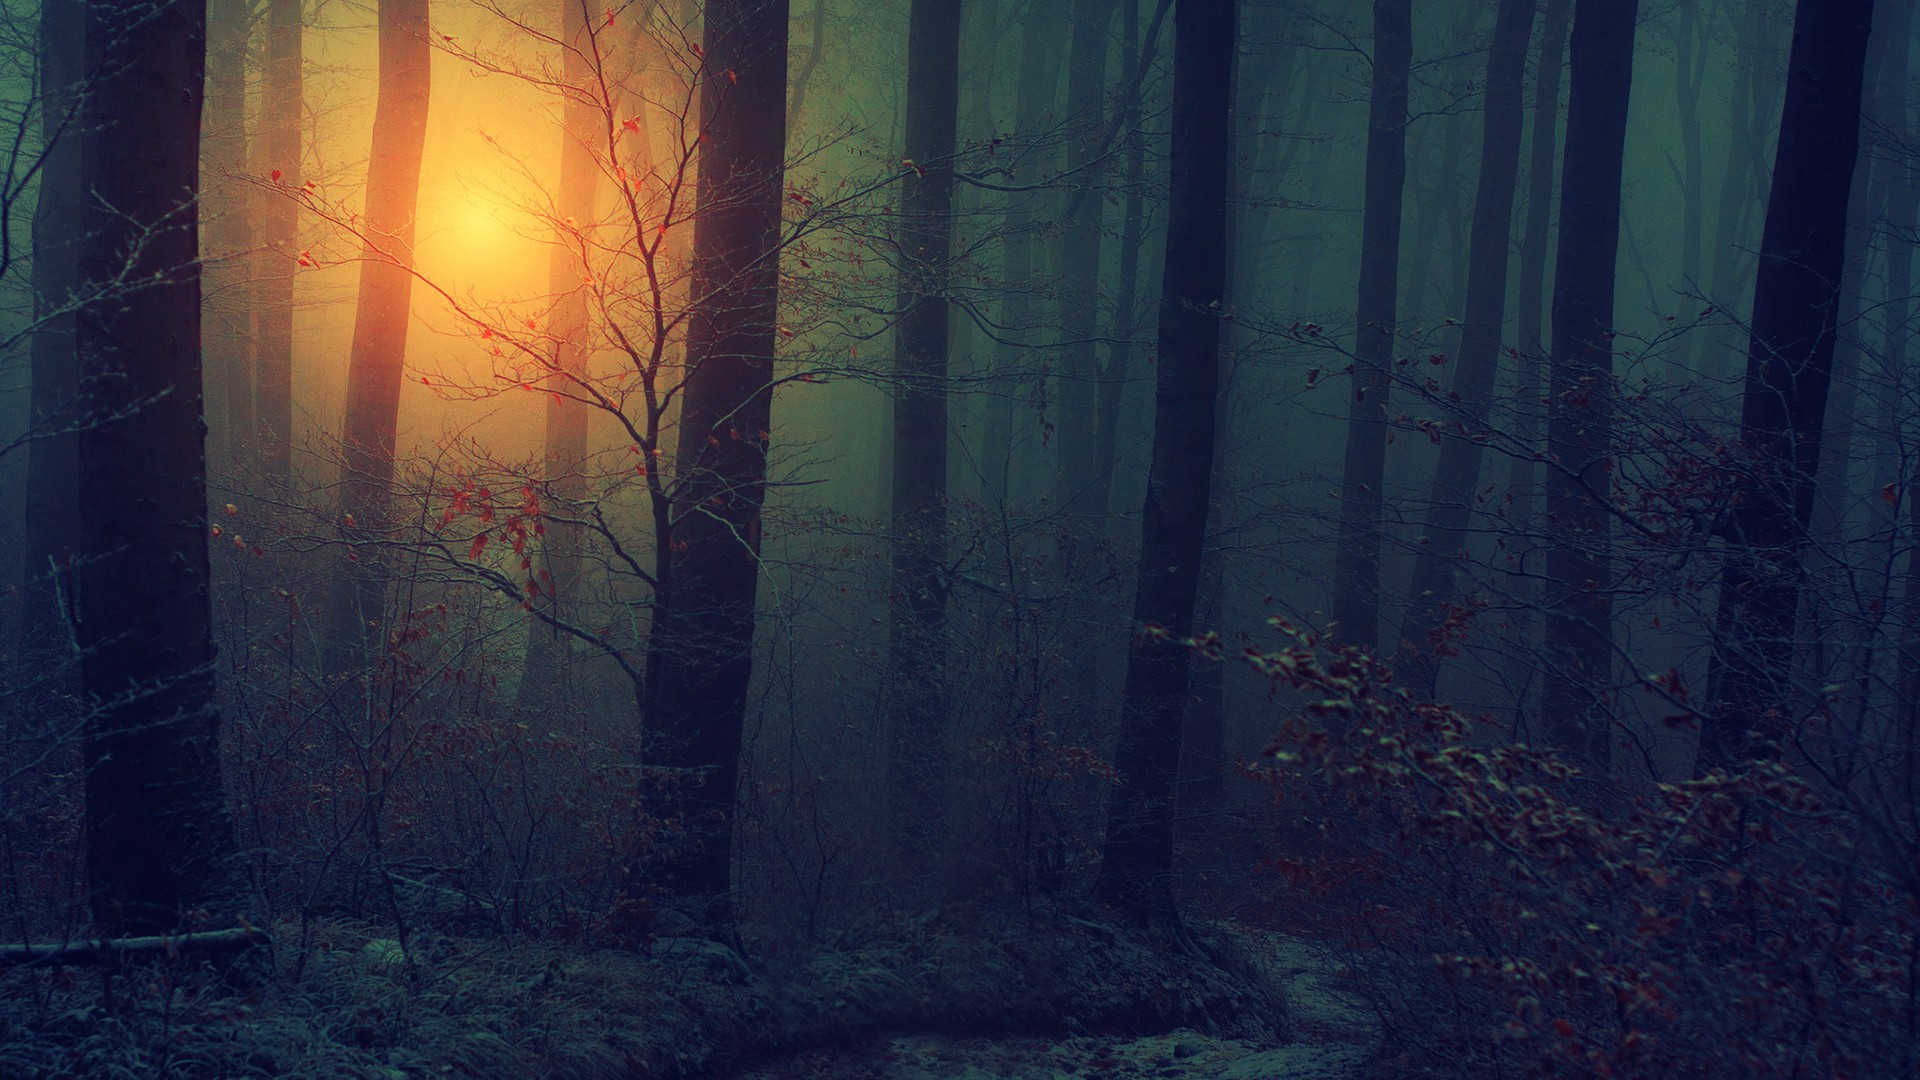 Dark Fall Wallpaper Nature Landscapes Trees Forests Wood Floor Leaves Autumn